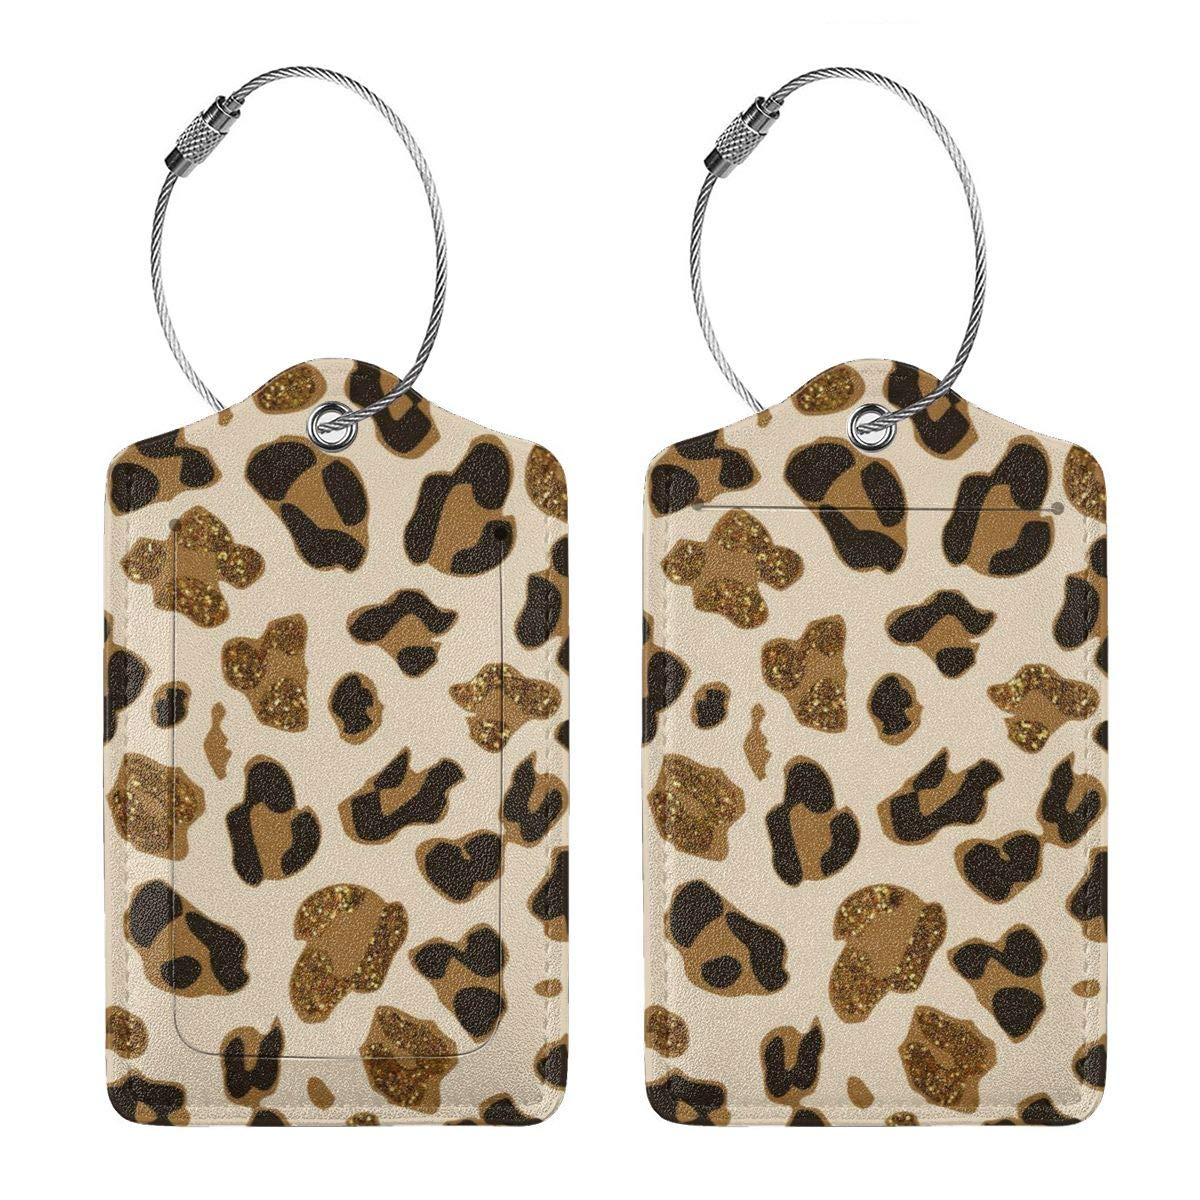 Leopard Leather Luggage Tags Personalized Address Card With Privacy Flap